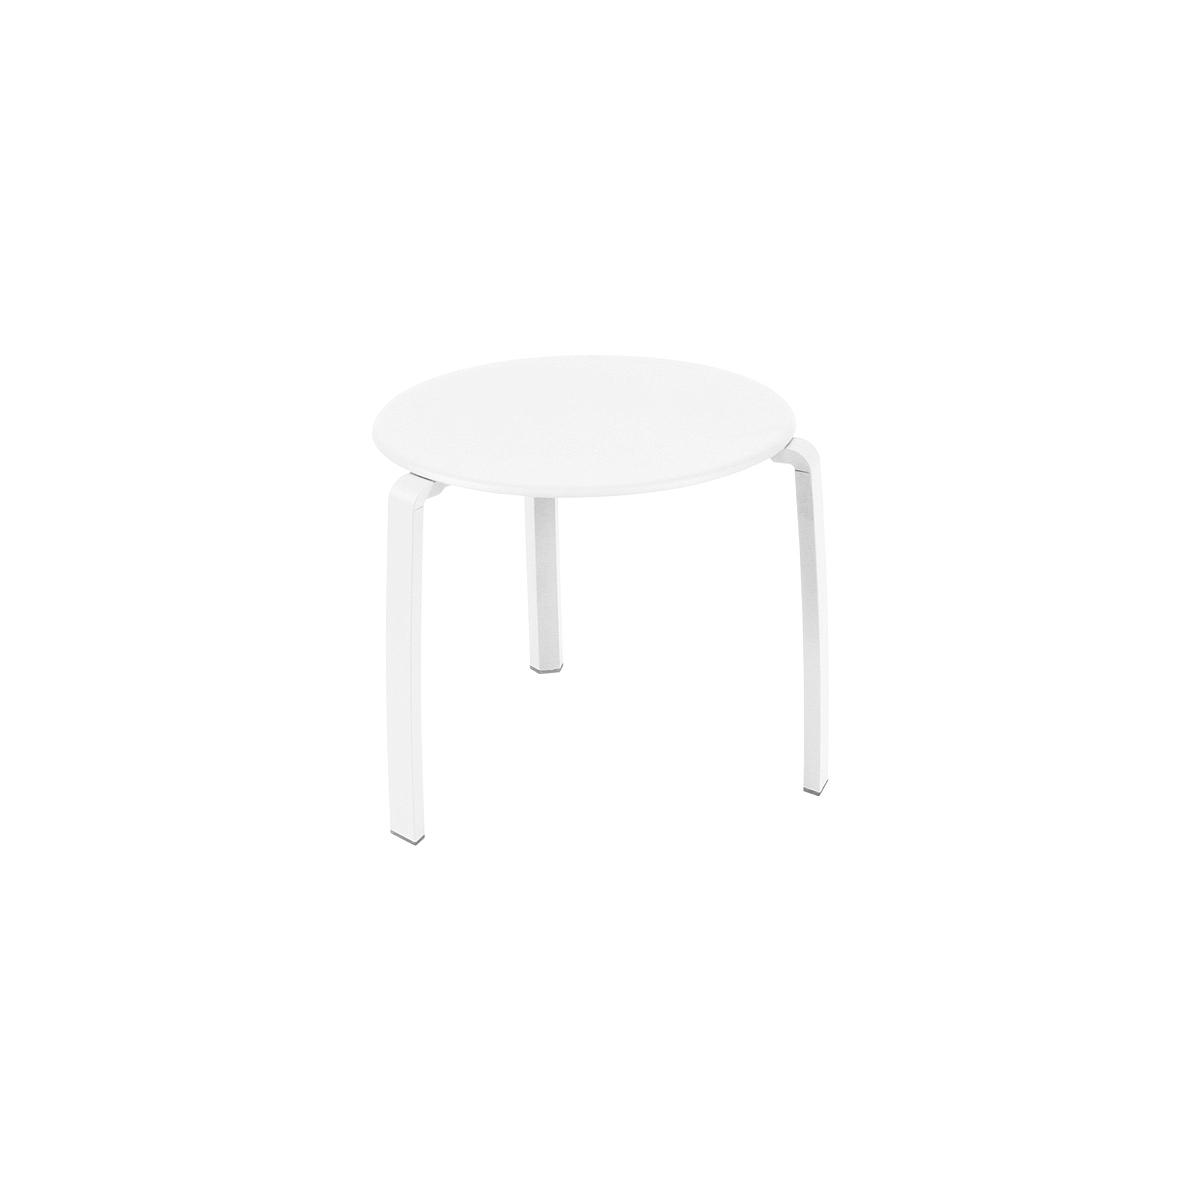 ALIZE by Fermob Table basse Blanc coton